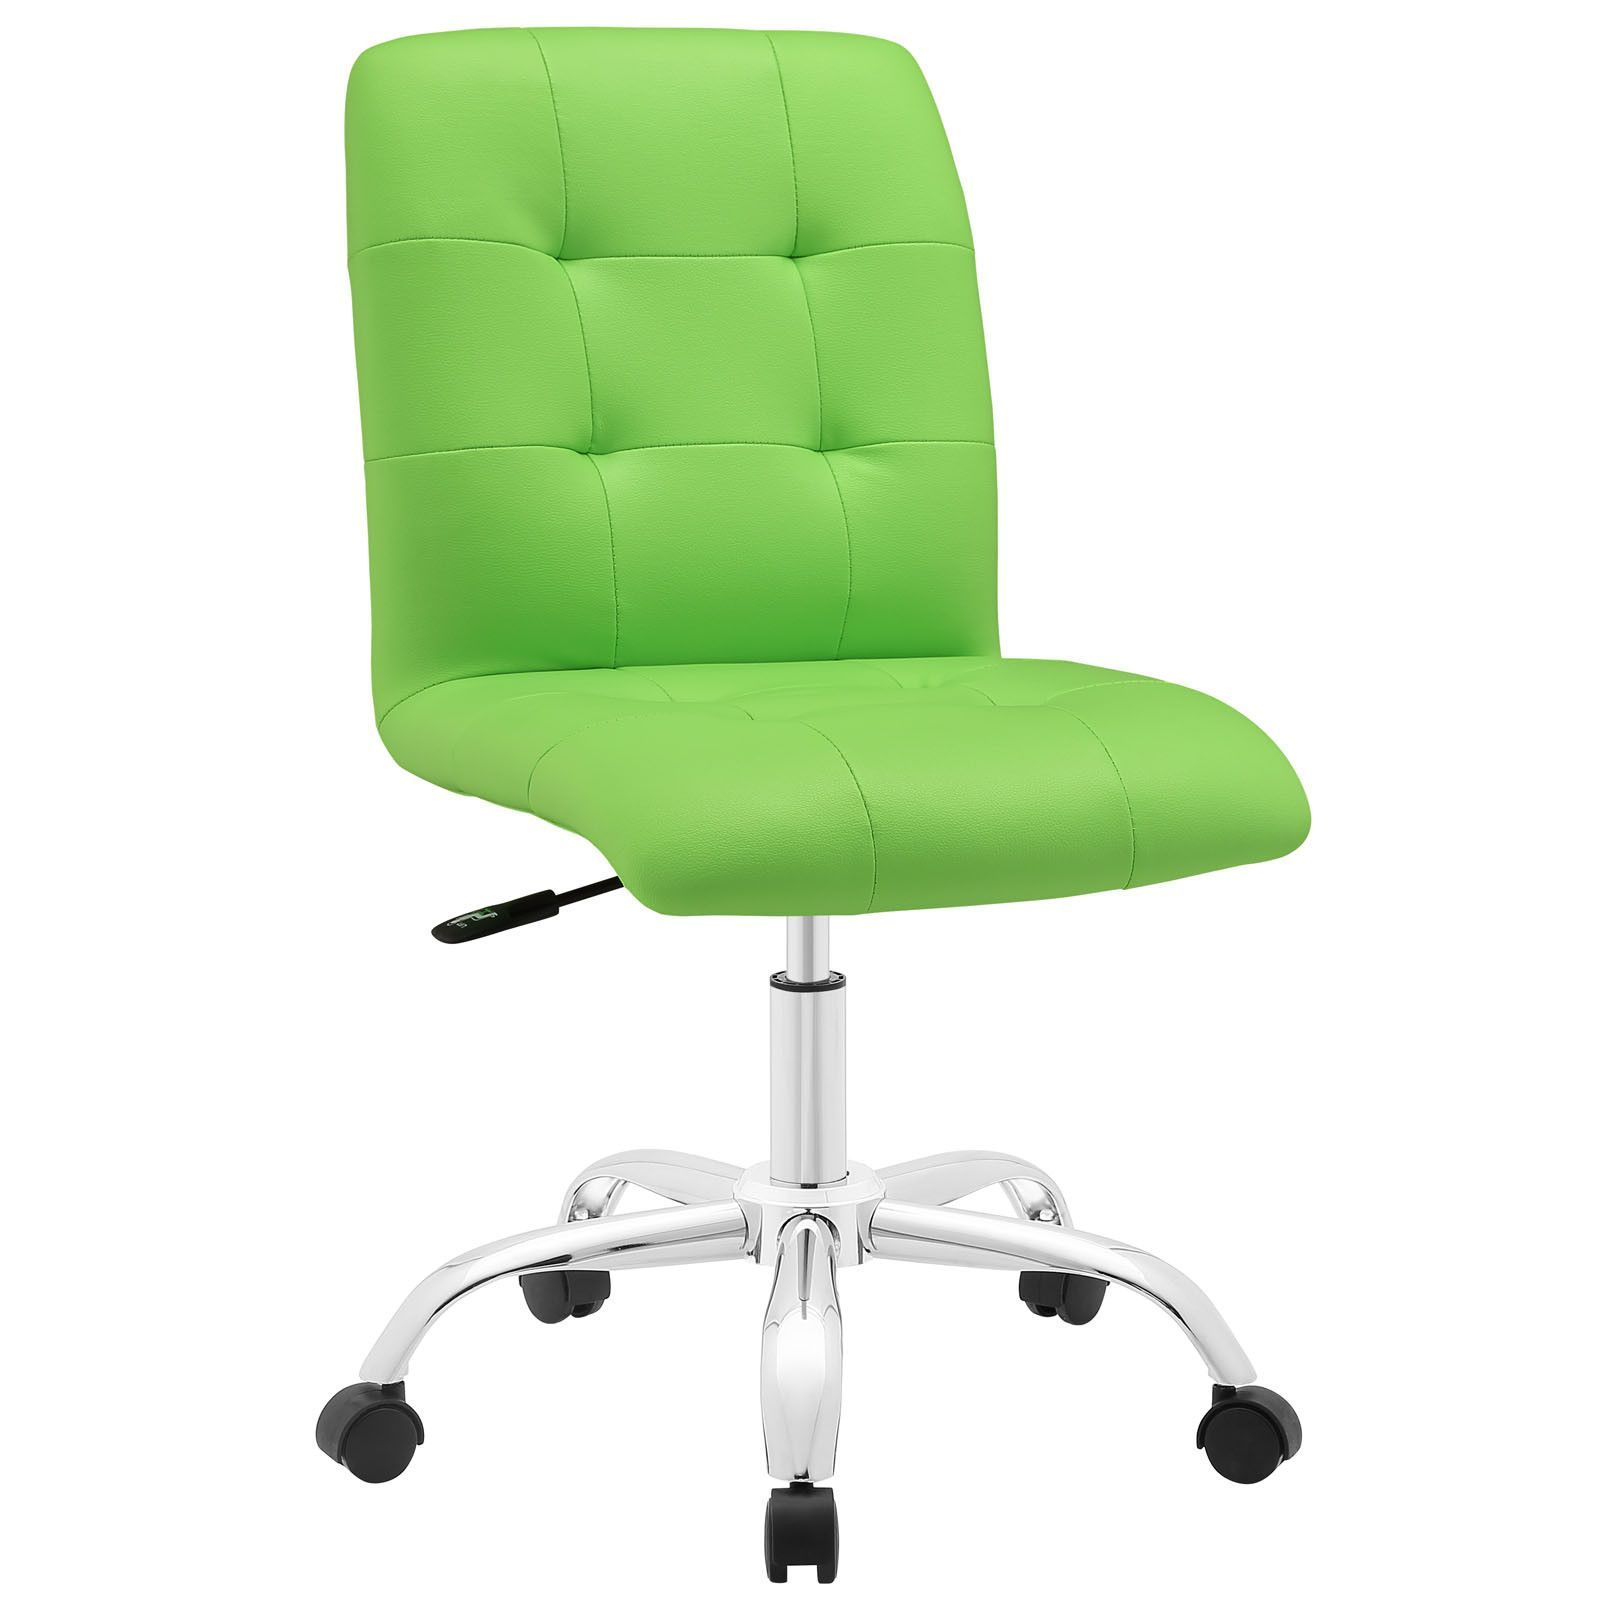 lime green office furniture. Prim Mid Back Office Chair In Bright Green Lime Furniture E